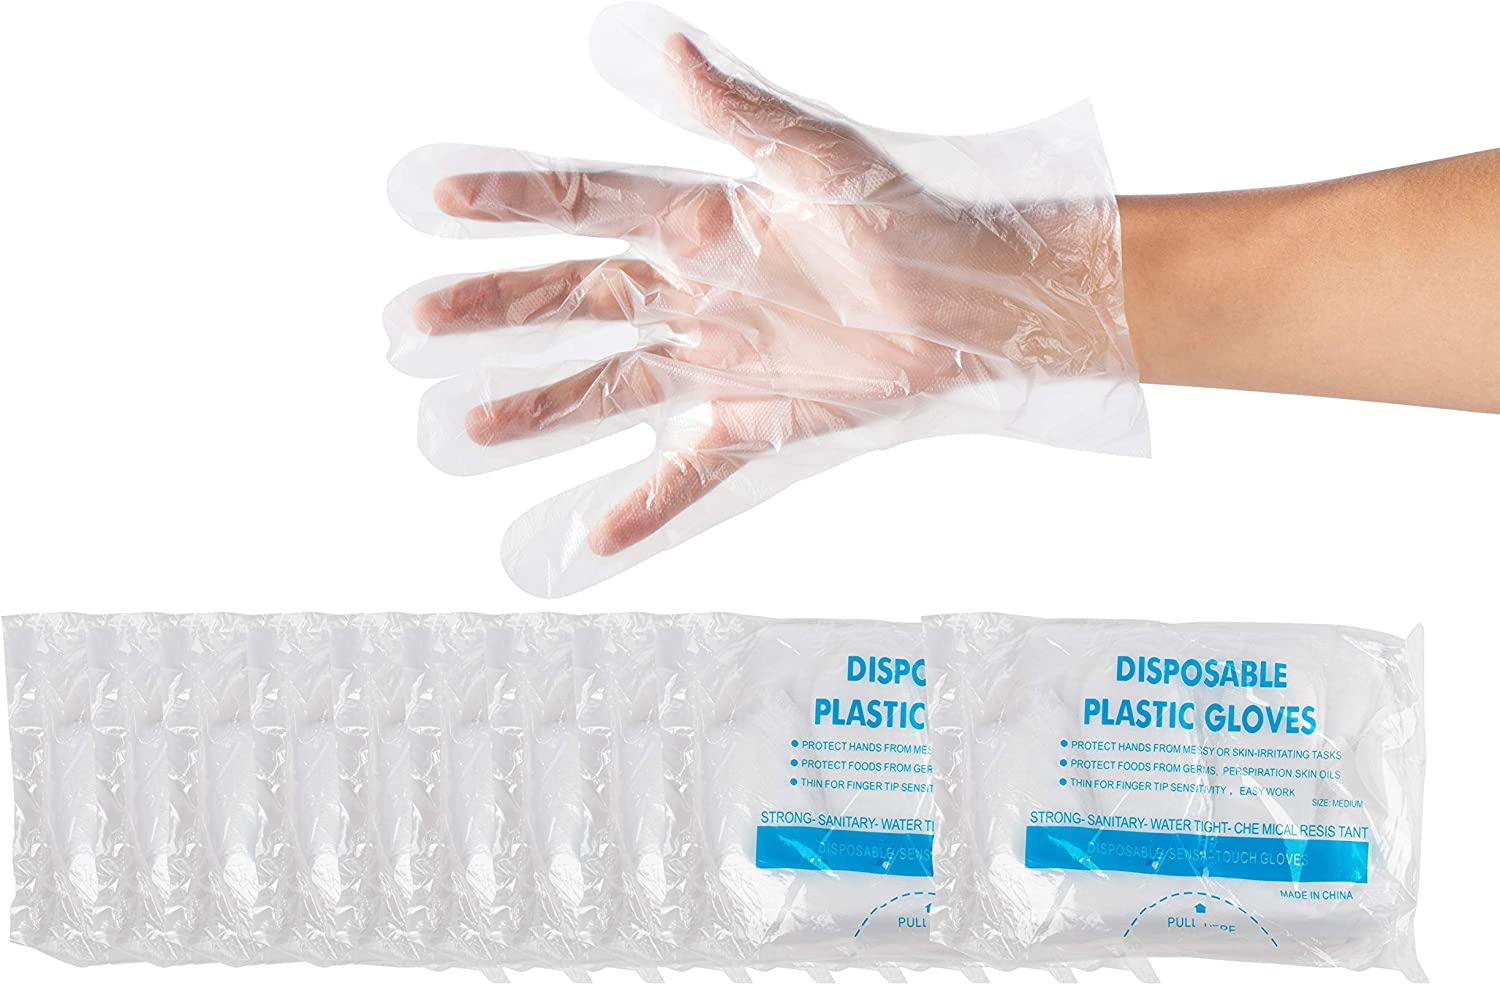 1000-Piece Disposable Gloves – Latex Free Plastic Food Prep Gloves for Cooking, Food Handling, Kitchen, BBQ, Cleaning – Clear, One Size Fits Most